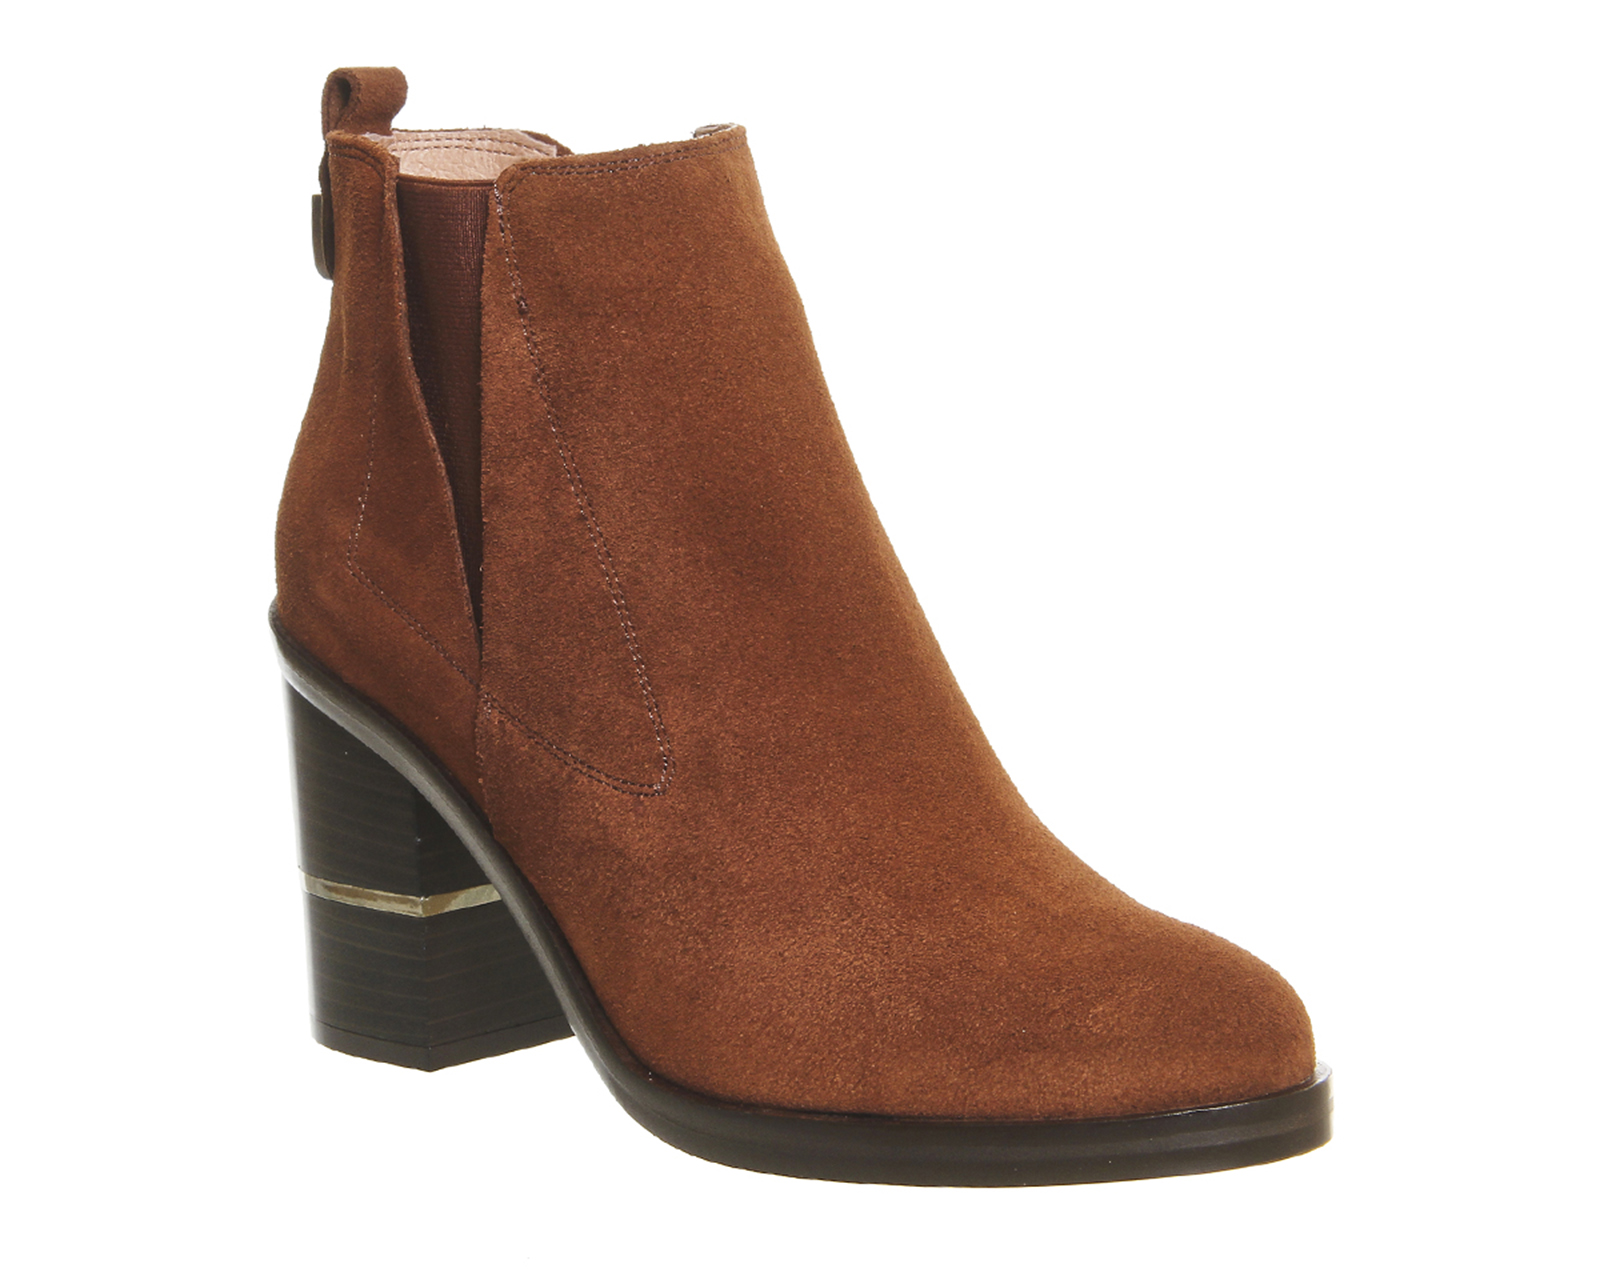 Womens-Office-Illusion-Block-Heel-Chelsea-Boots-BROWN-